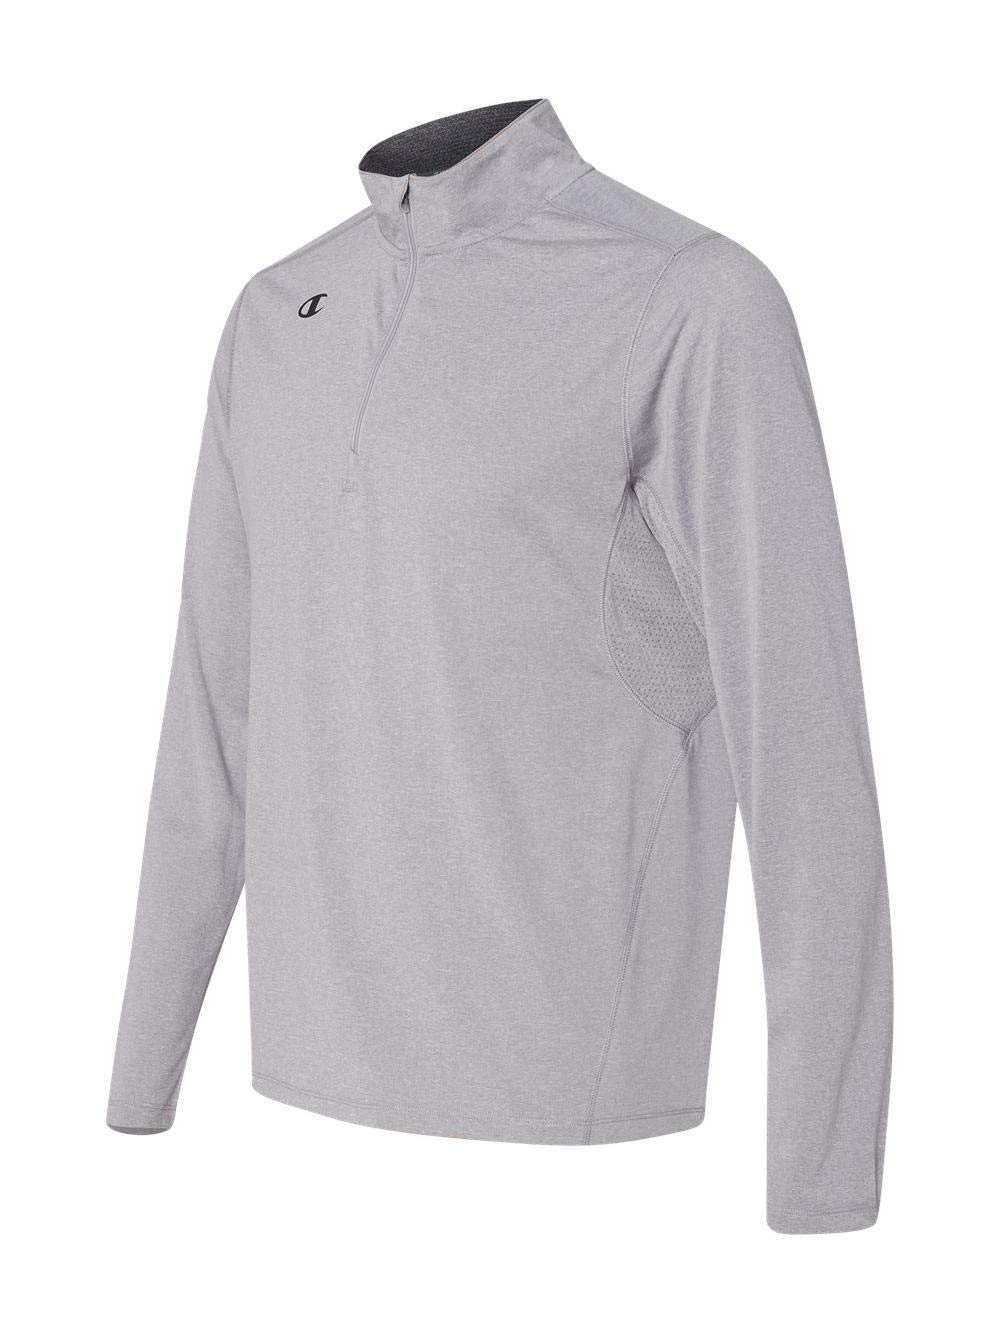 Champion Men's Quarter-Zip Double Dry Pullover, Oxford Grey, Medium by Champion